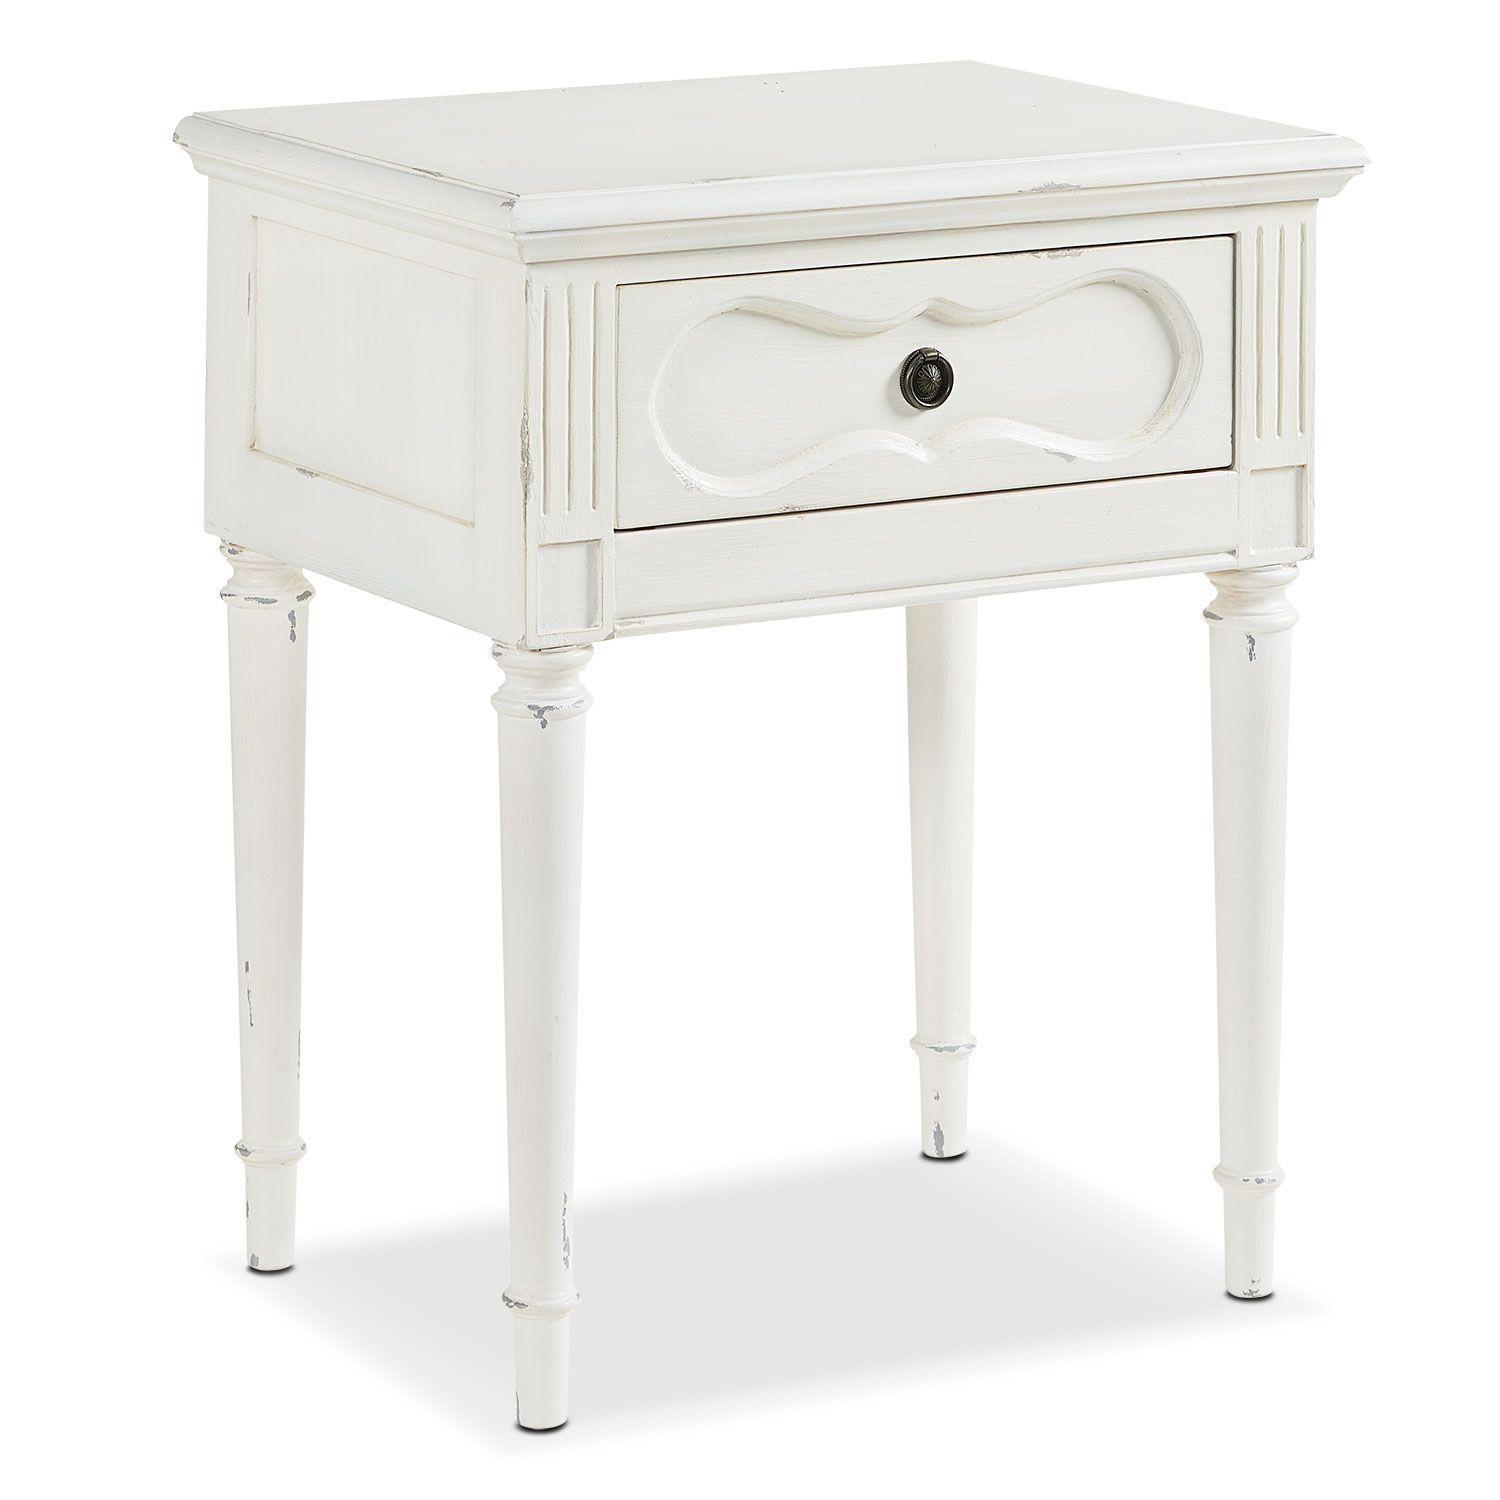 this vintage style french inspired cameo night table works for the threshold margate accent bedside wherever you need small drawer has curvy silhouette new home decor ideas square